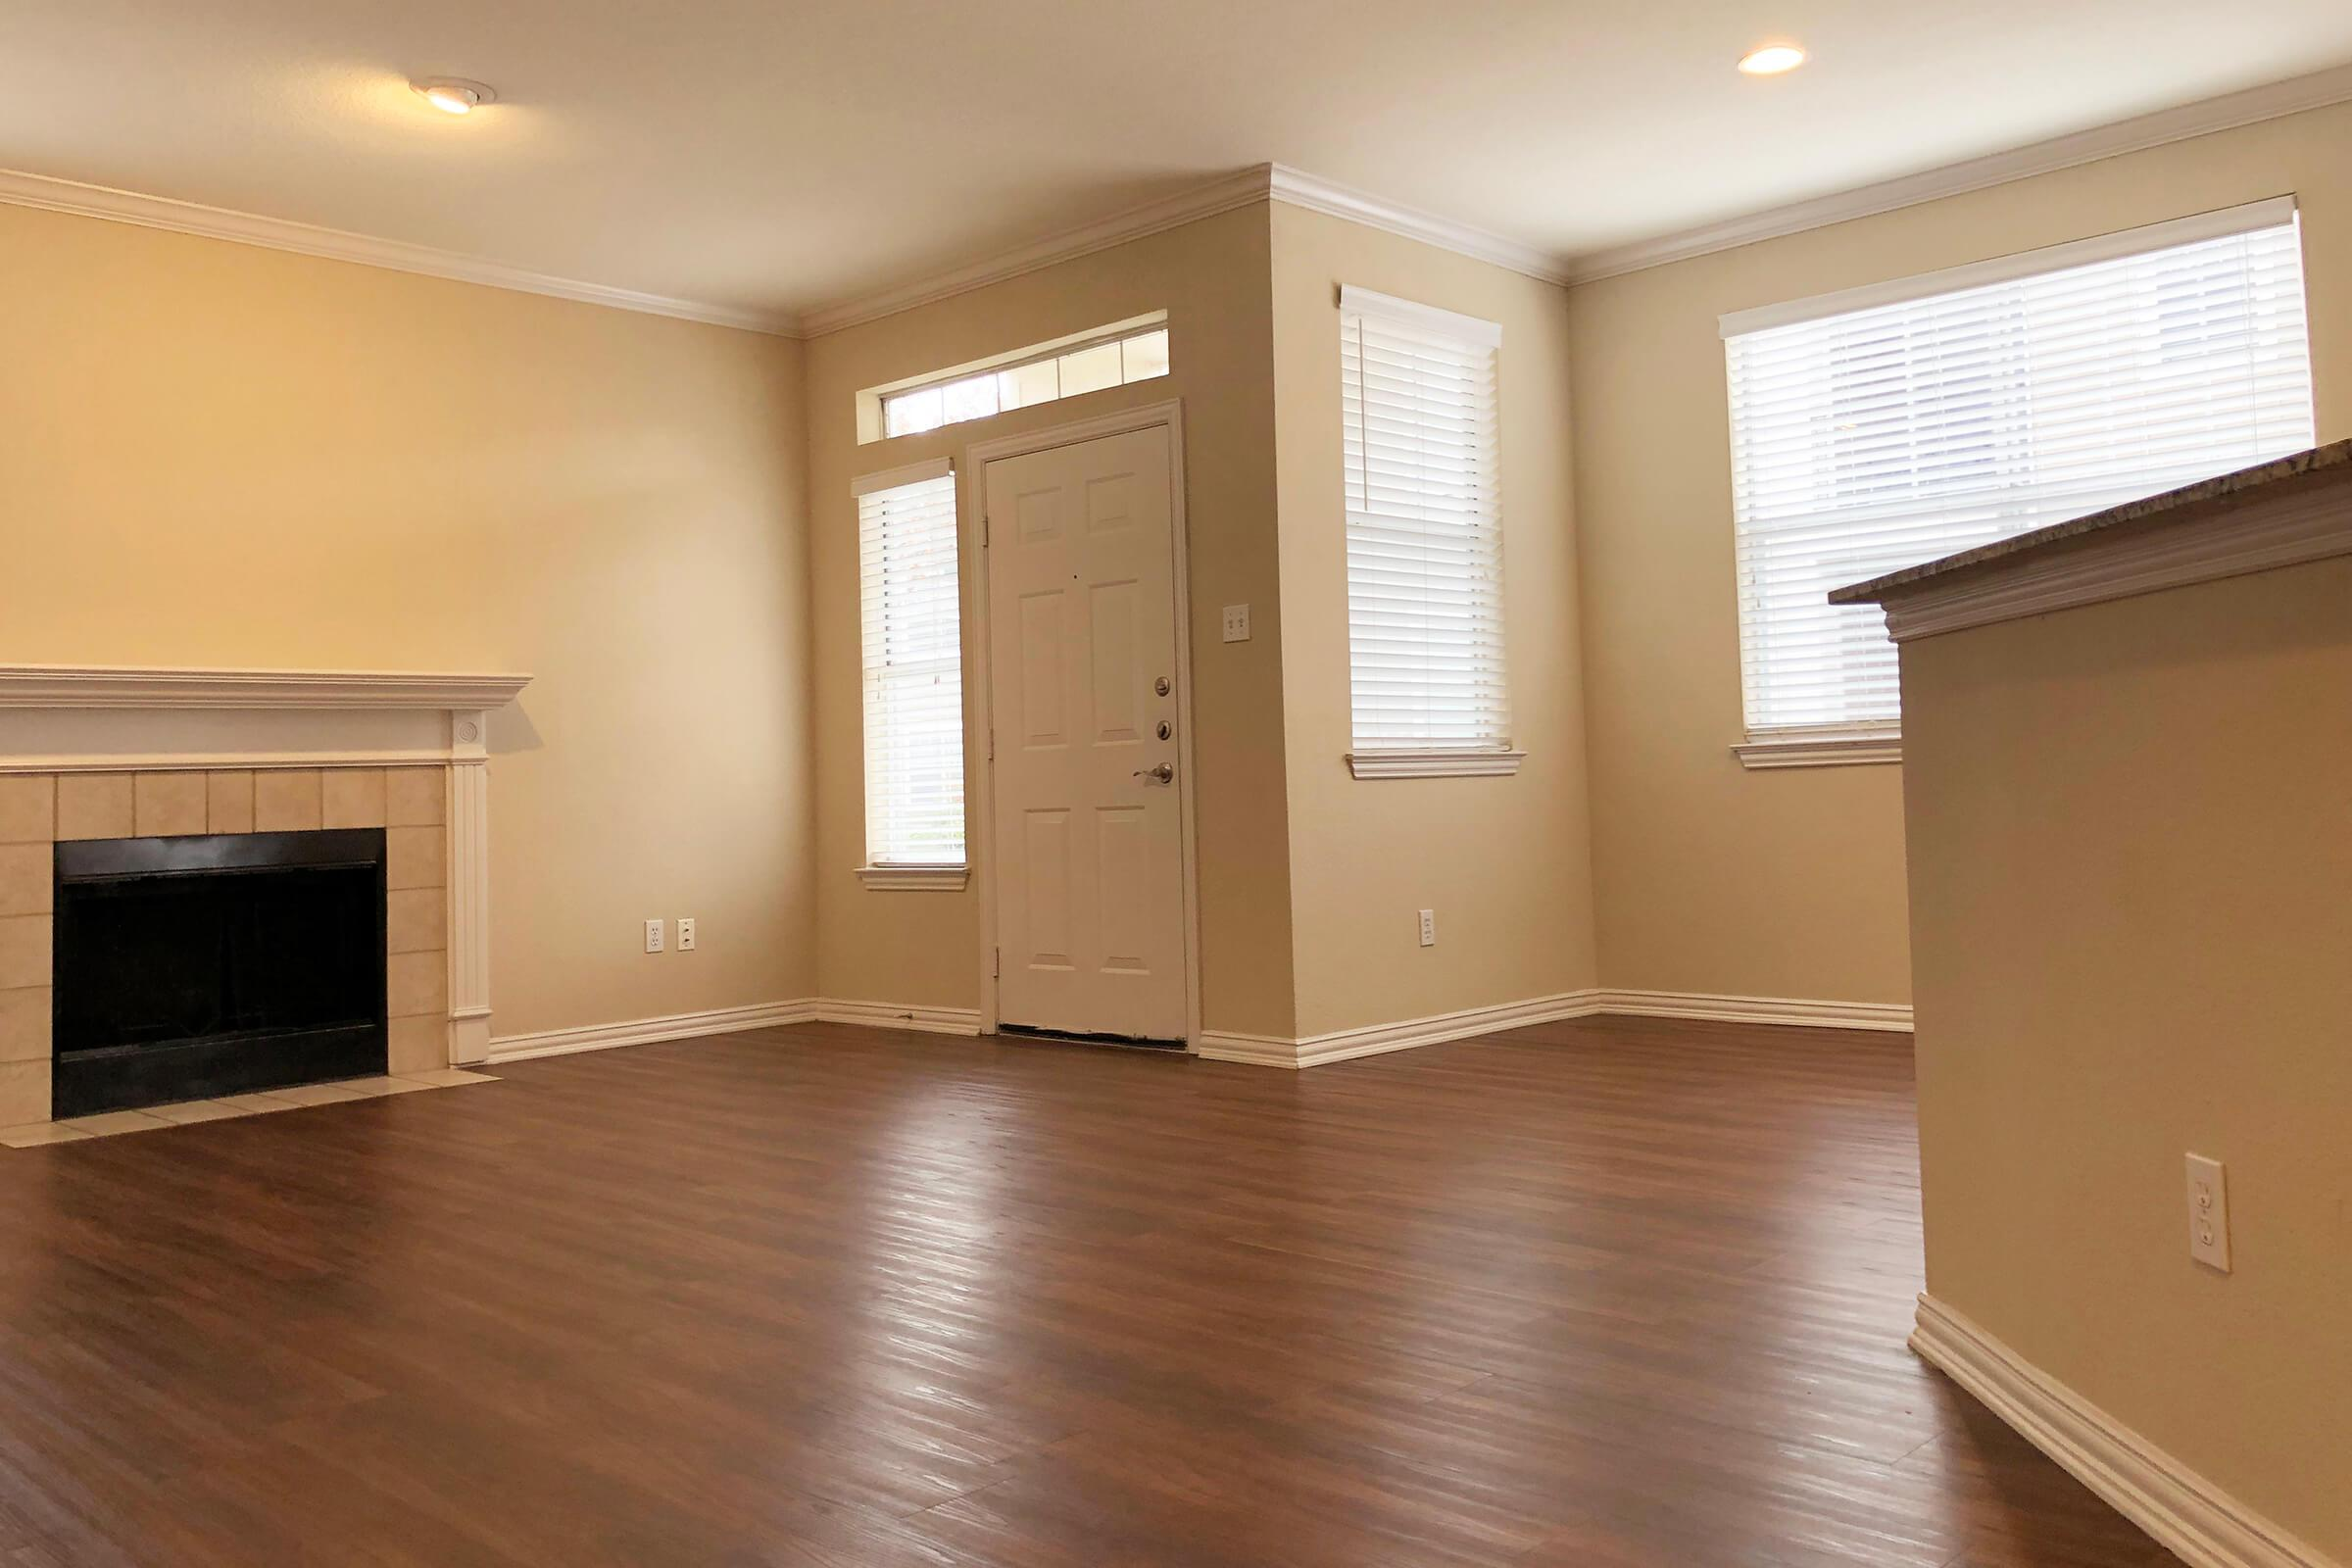 a room with a hard wood floor